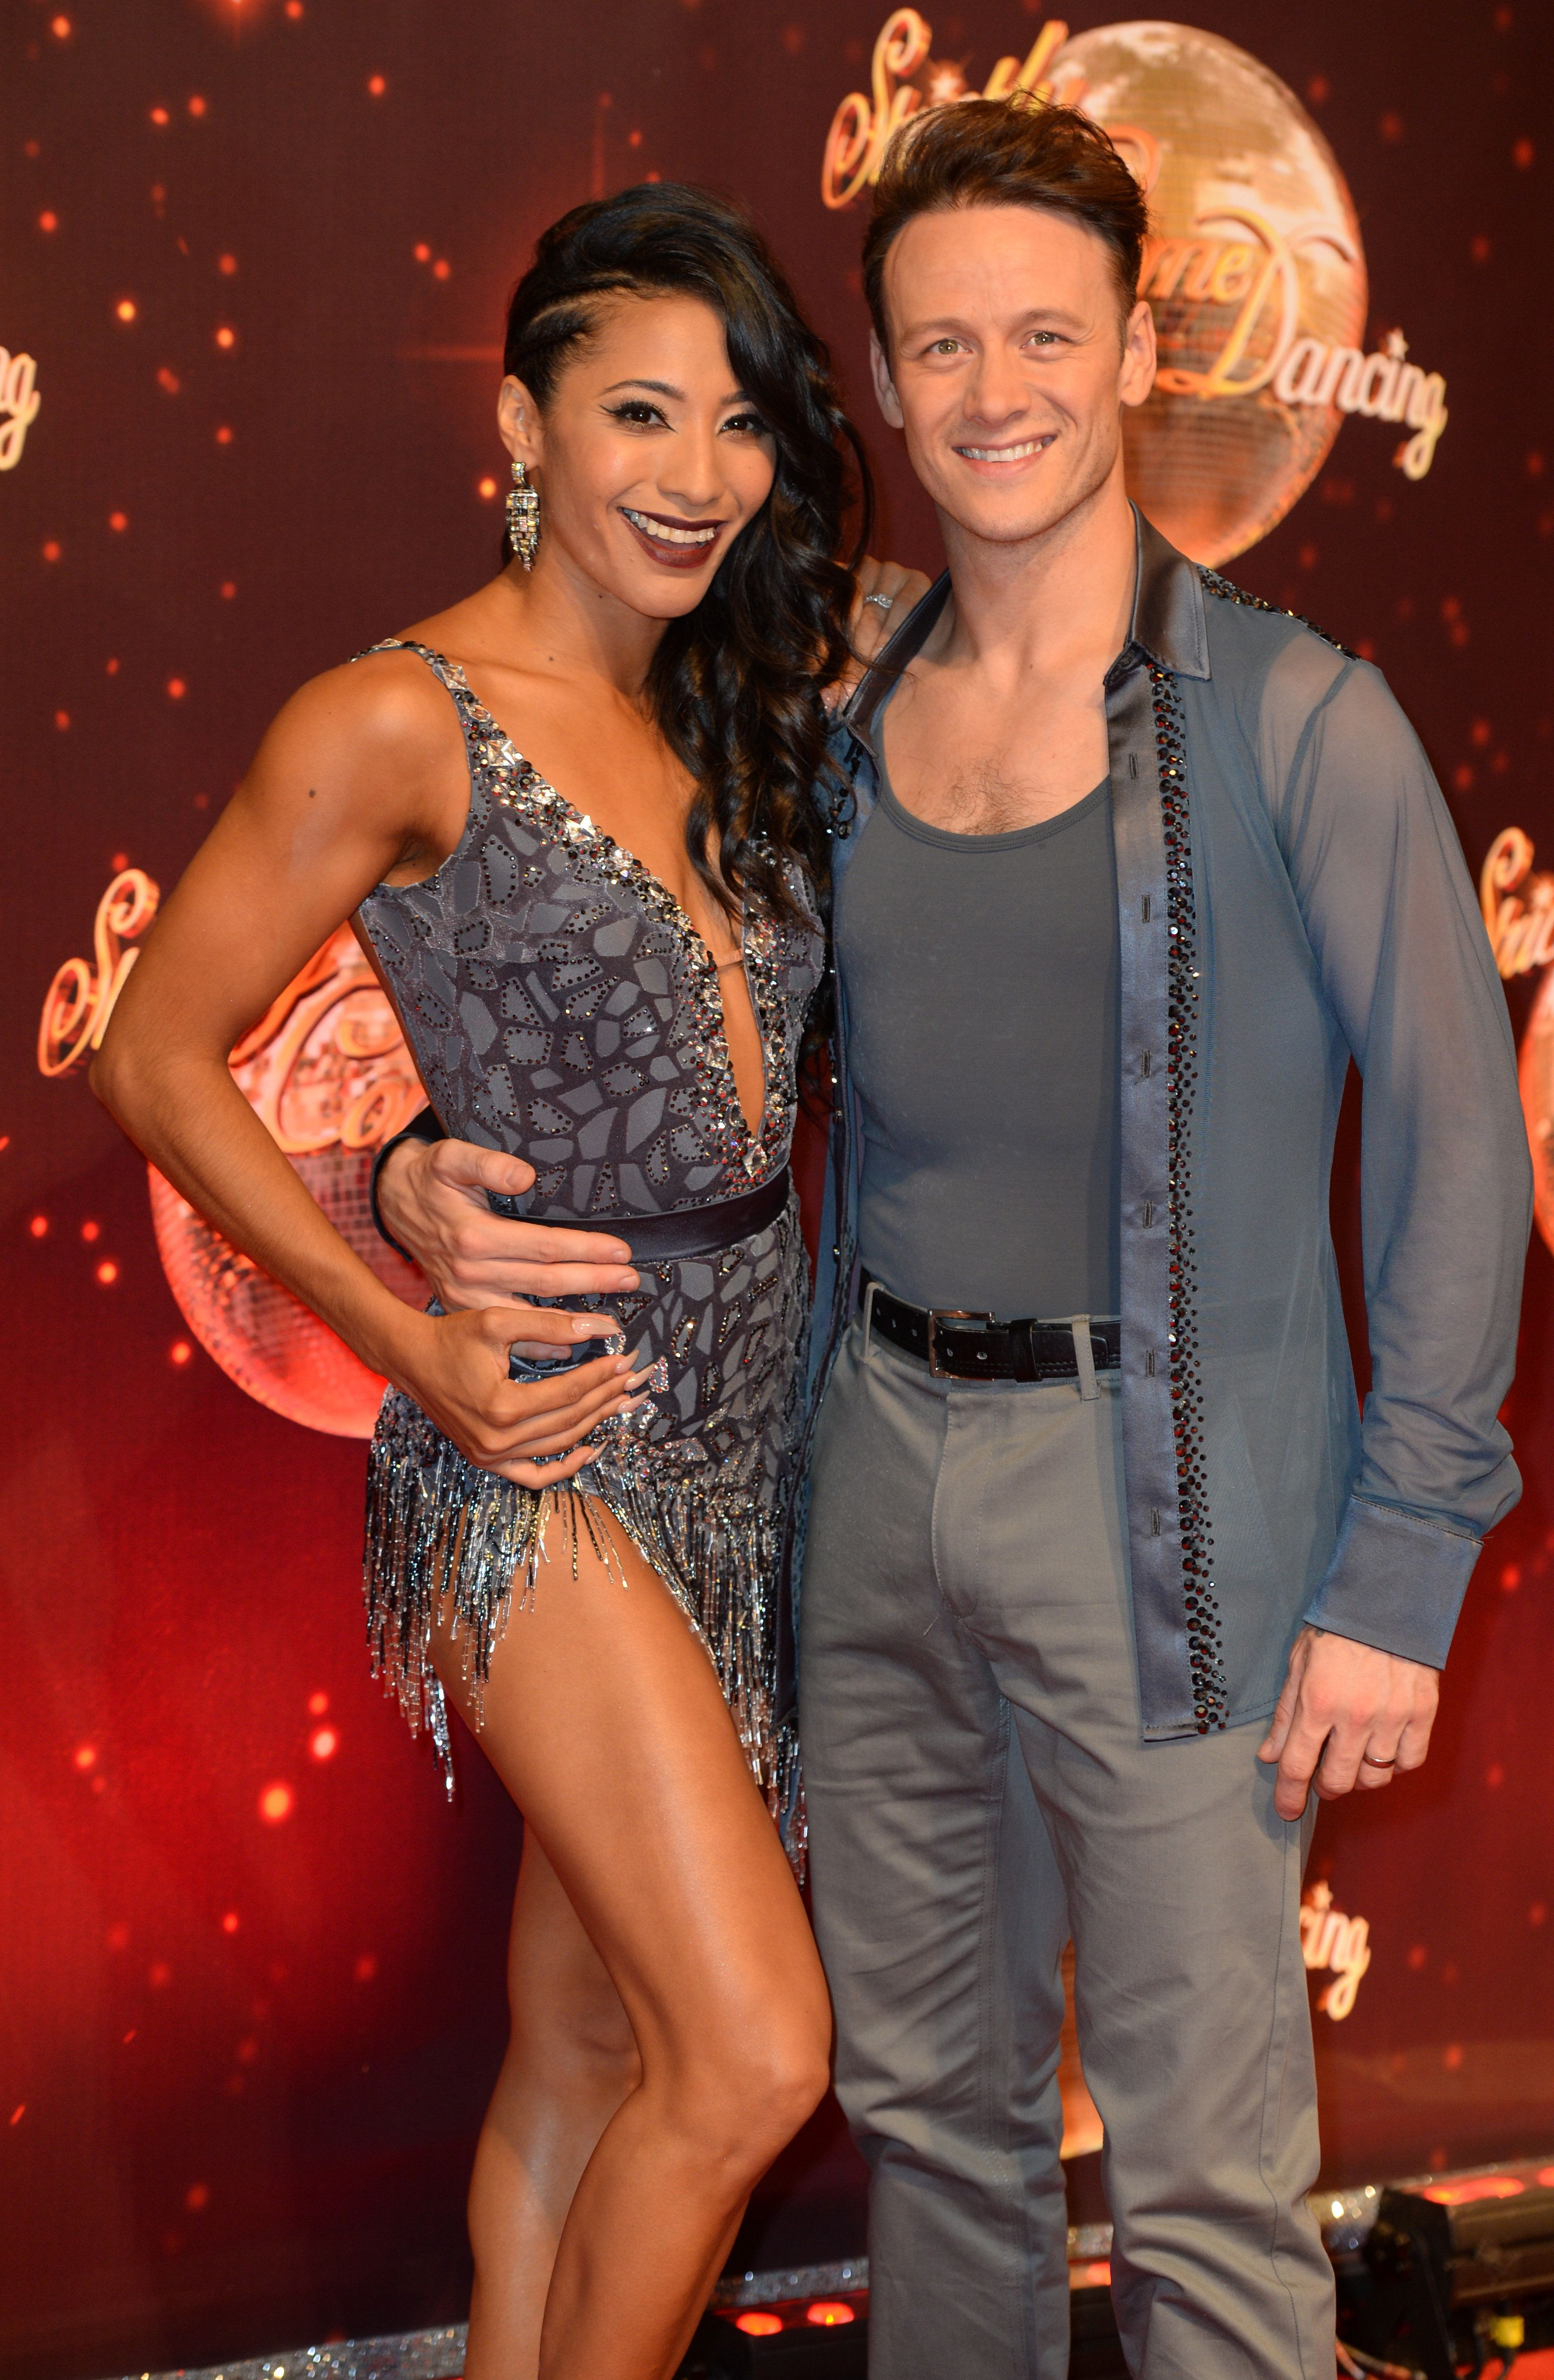 'Strictly' Professional Kevin Clifton Backs Fellow Pro Dancer To Take Over From Judge Len